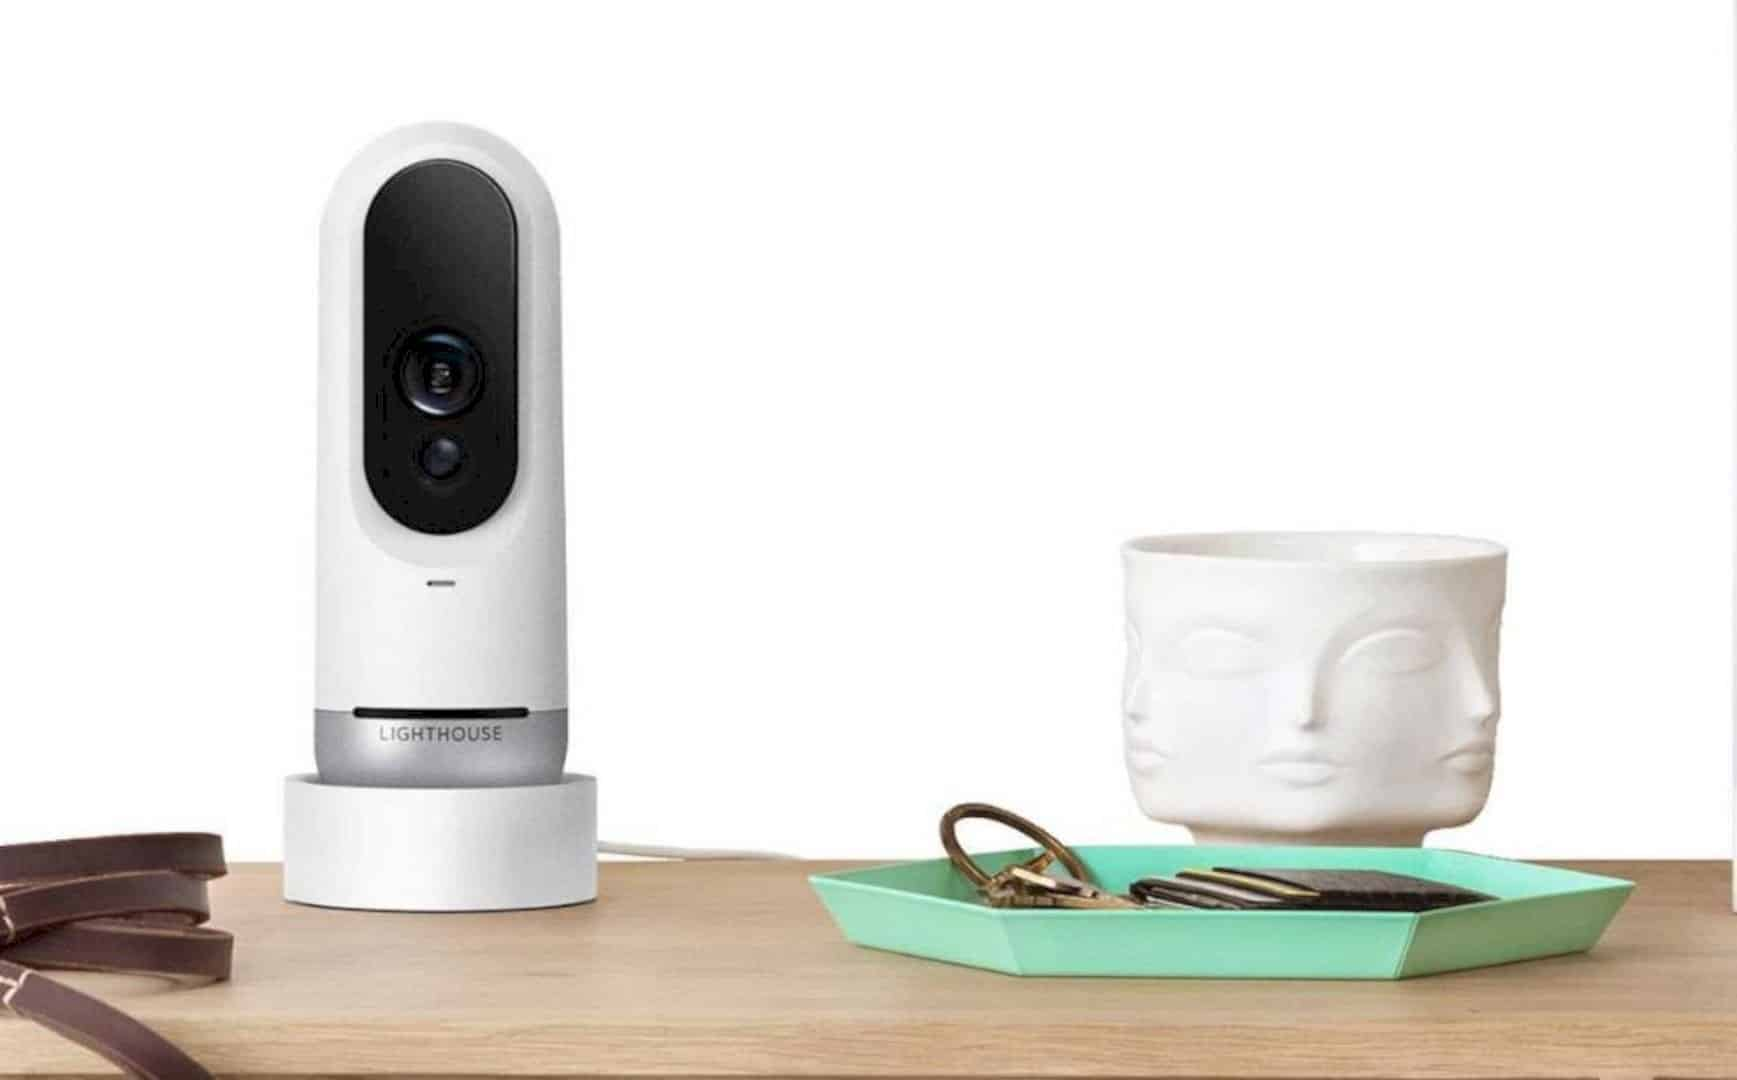 Lighthouse: The Smartest Home Security Camera Ever with AI Magic